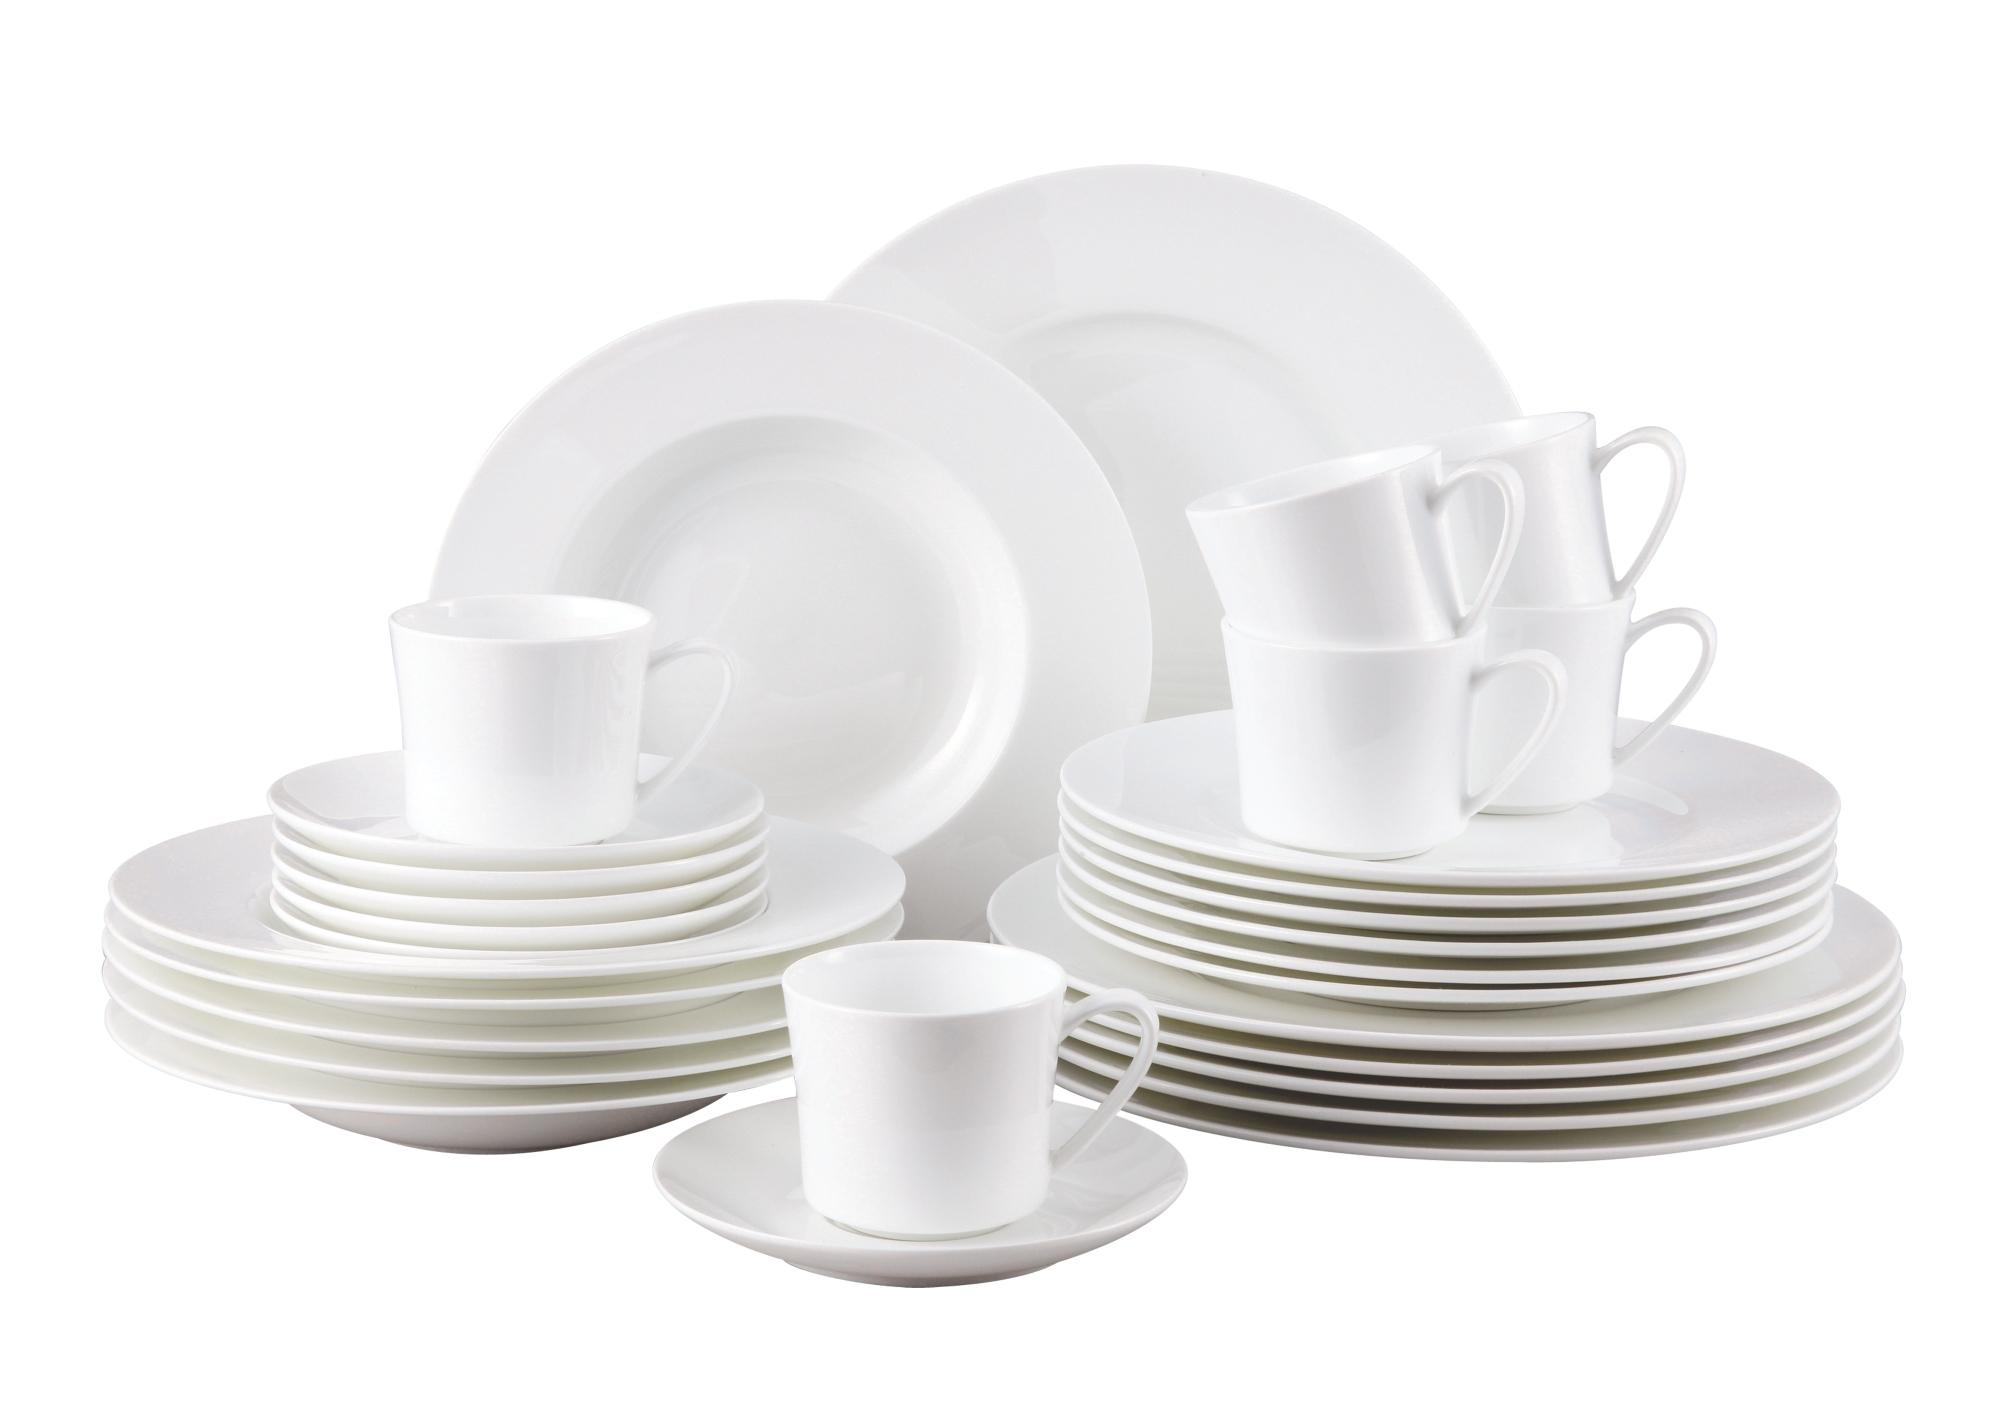 Rosenthal 61040 800001 18743 Jade Weiß 30 Teiliges Fine Bone China